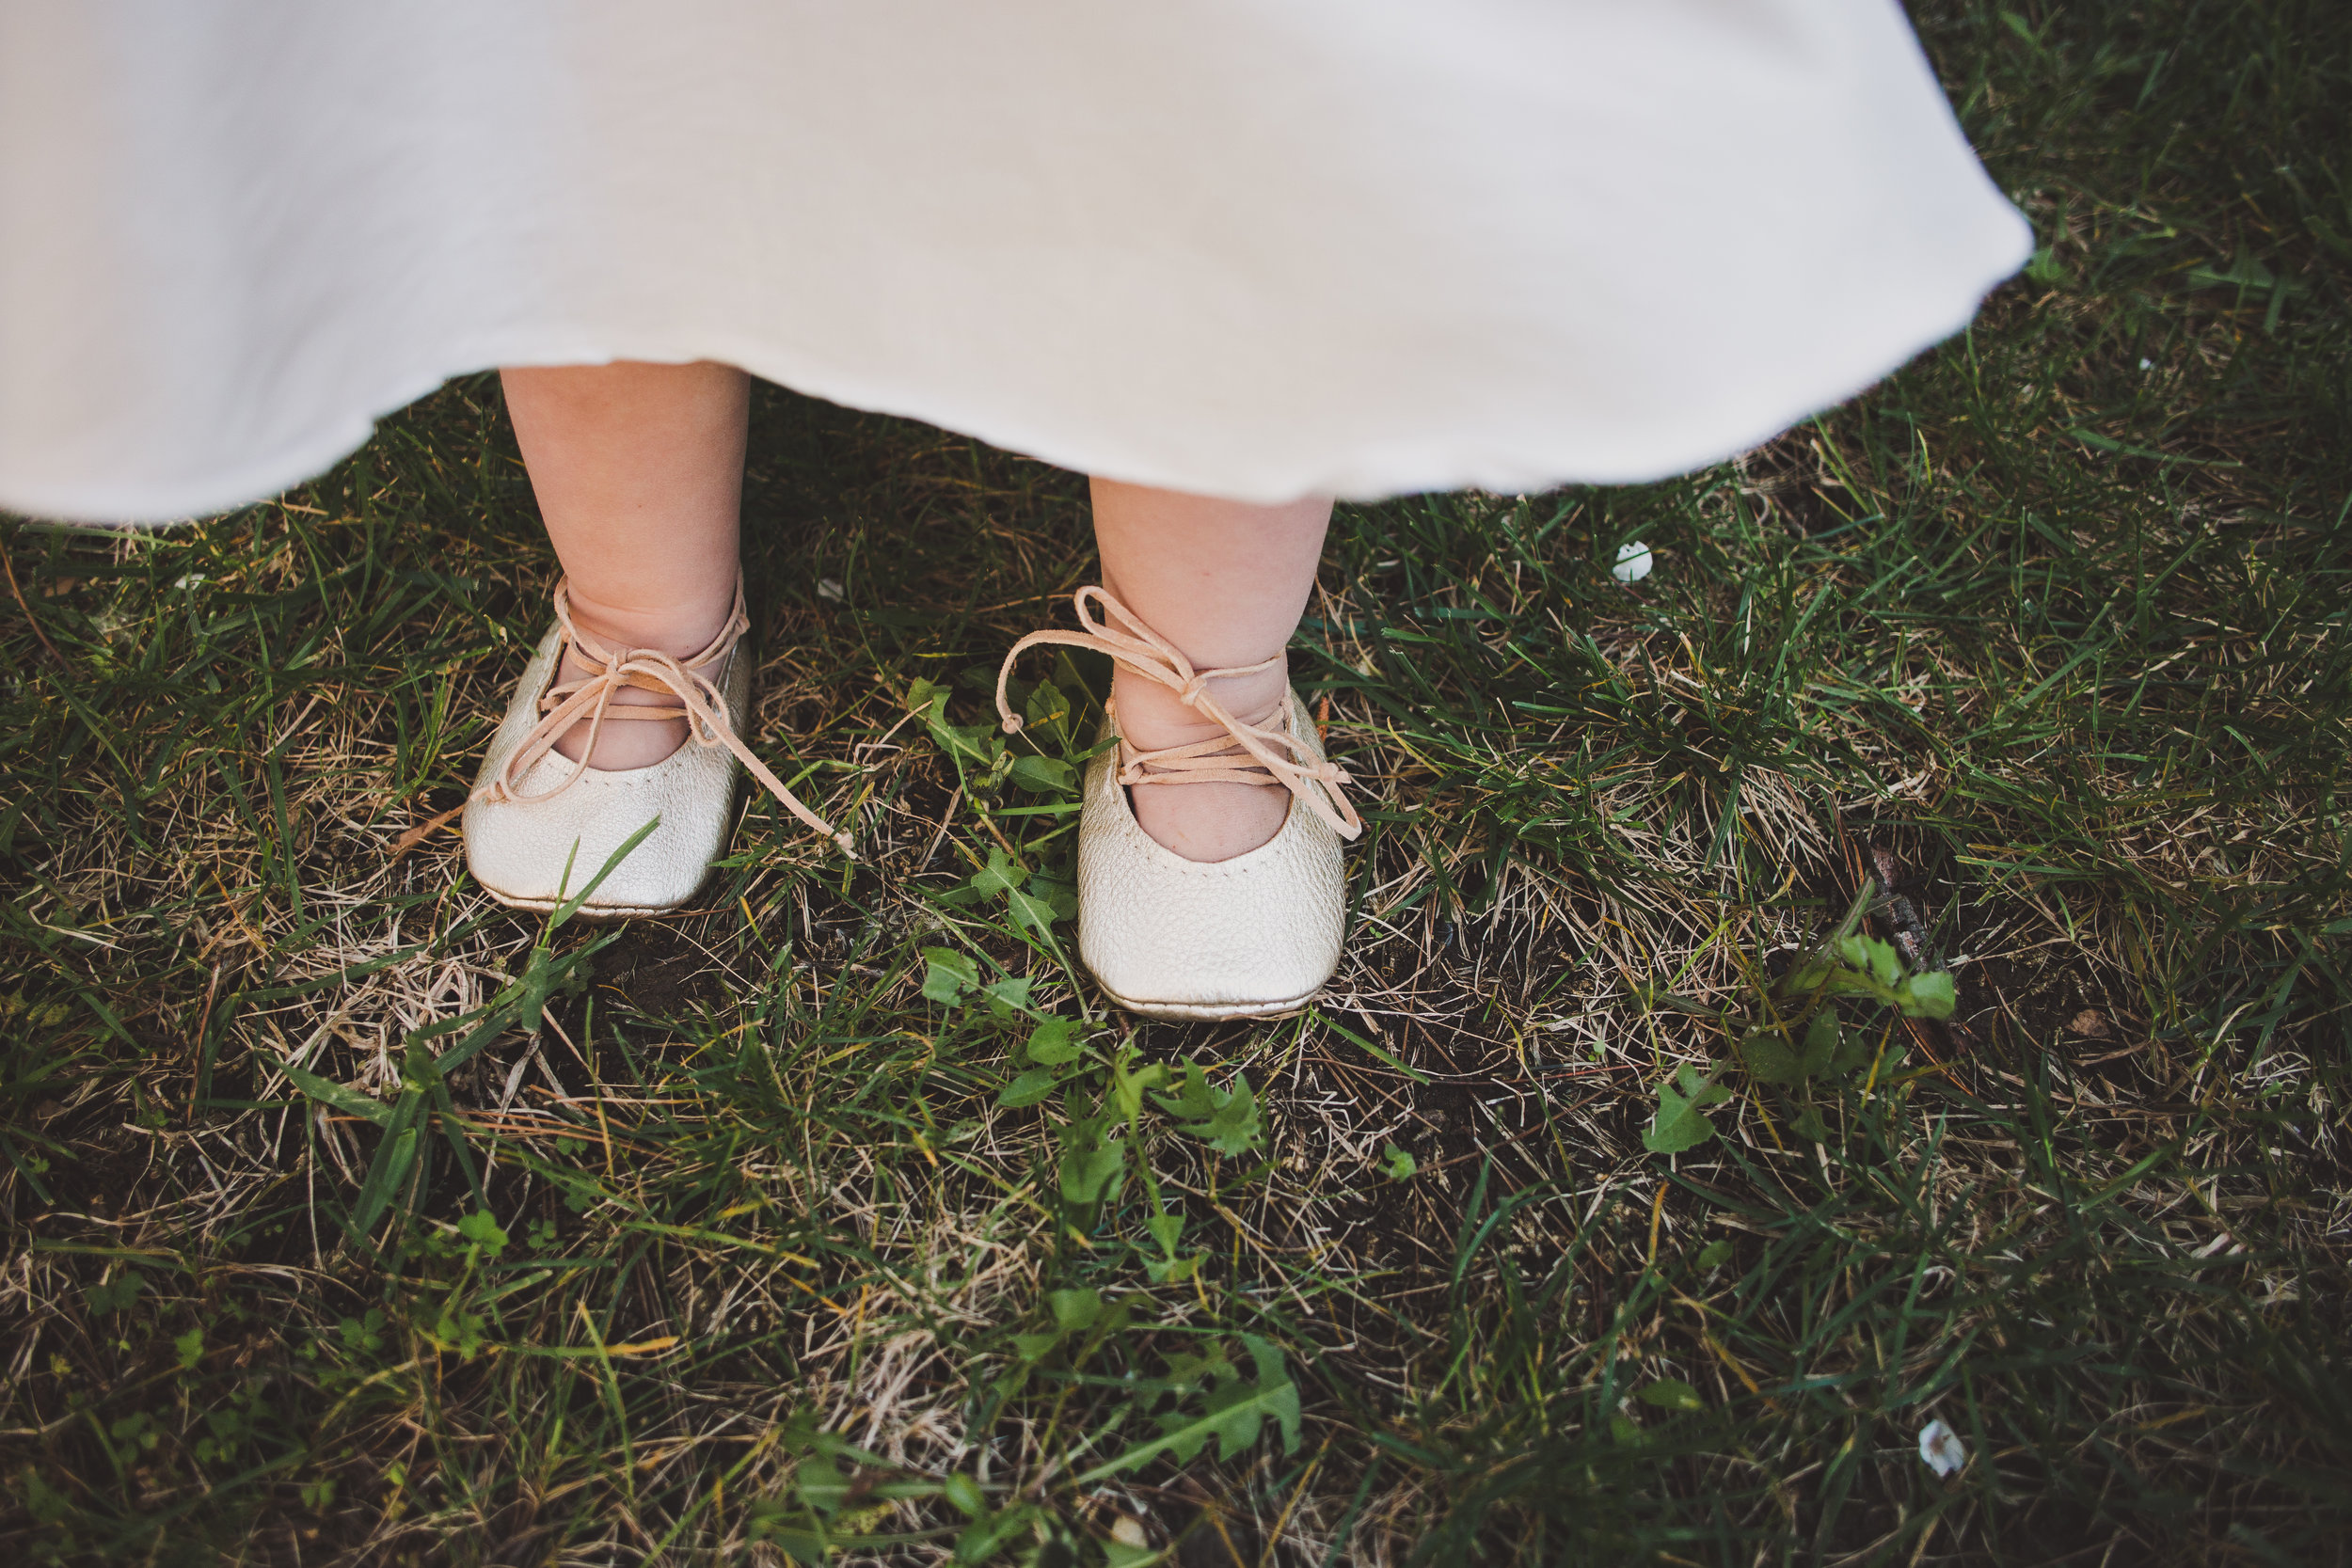 Baby Gold Lace Up Ballet Flats - First Birthday Party Ideas - A Vintage Chic Pi Day Themed 1st Birthday Party   Ava's First Birthday